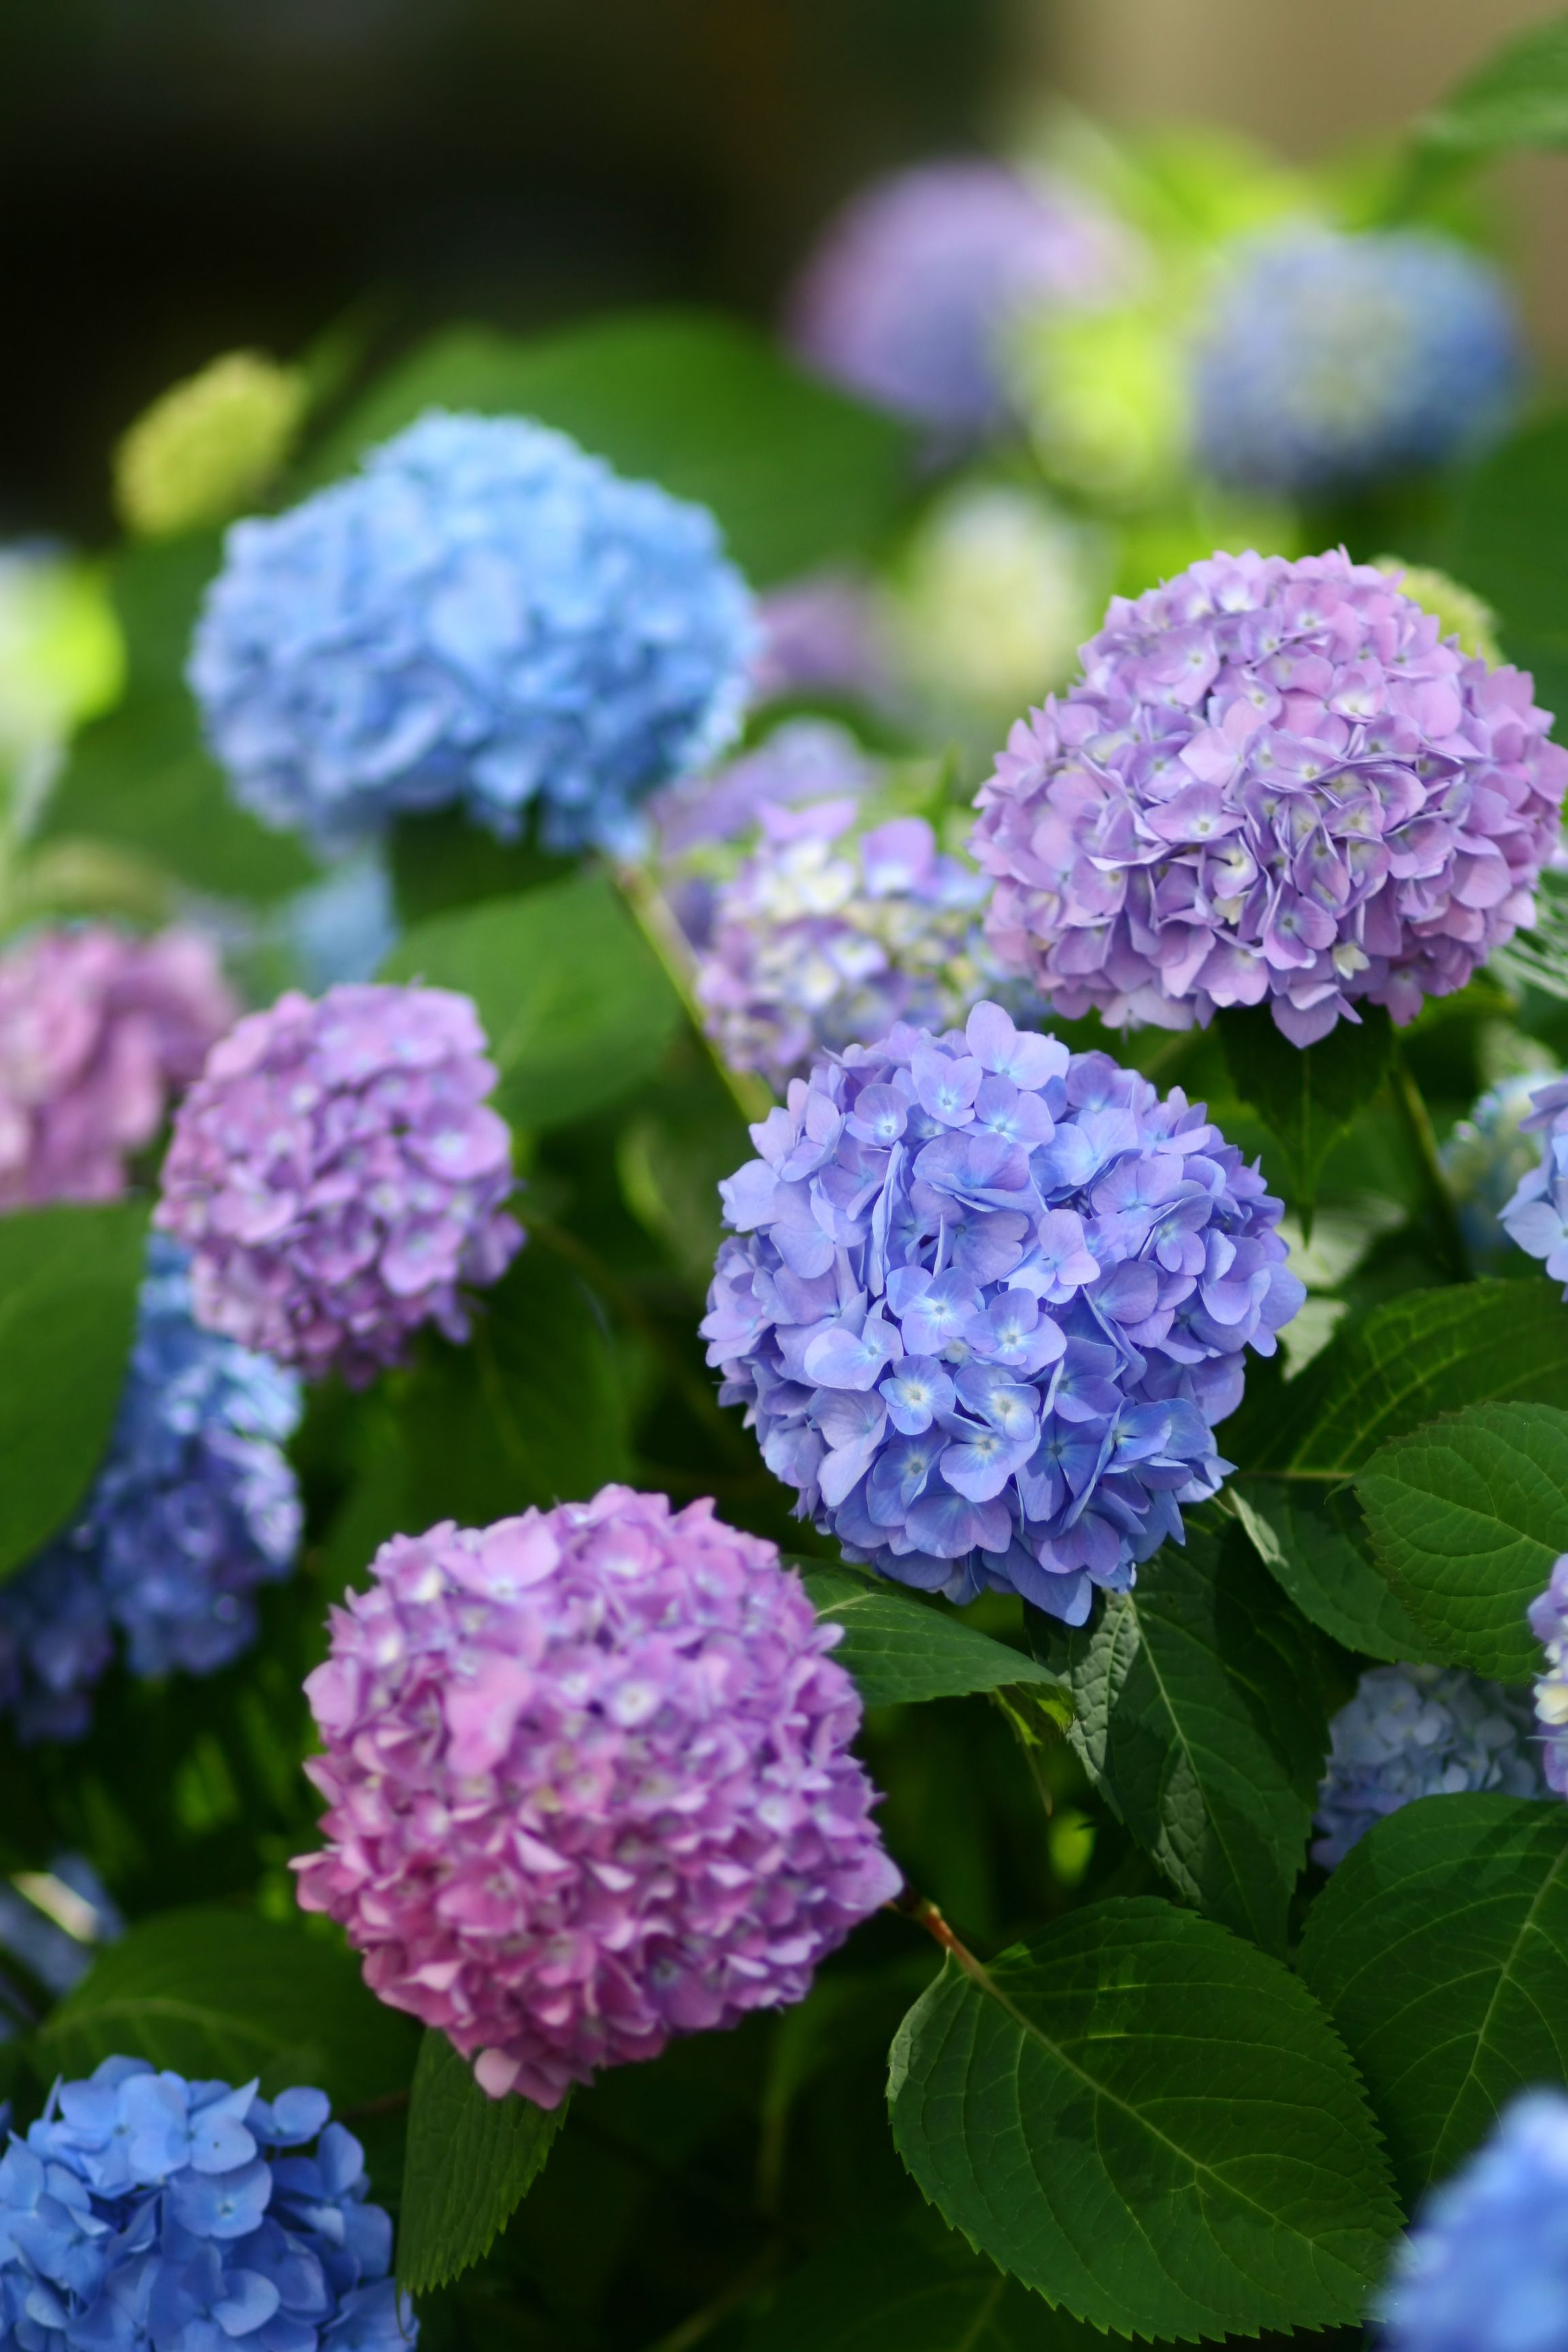 15 Poisonous Plants And Flowers Toxic Plants That Could Kill You